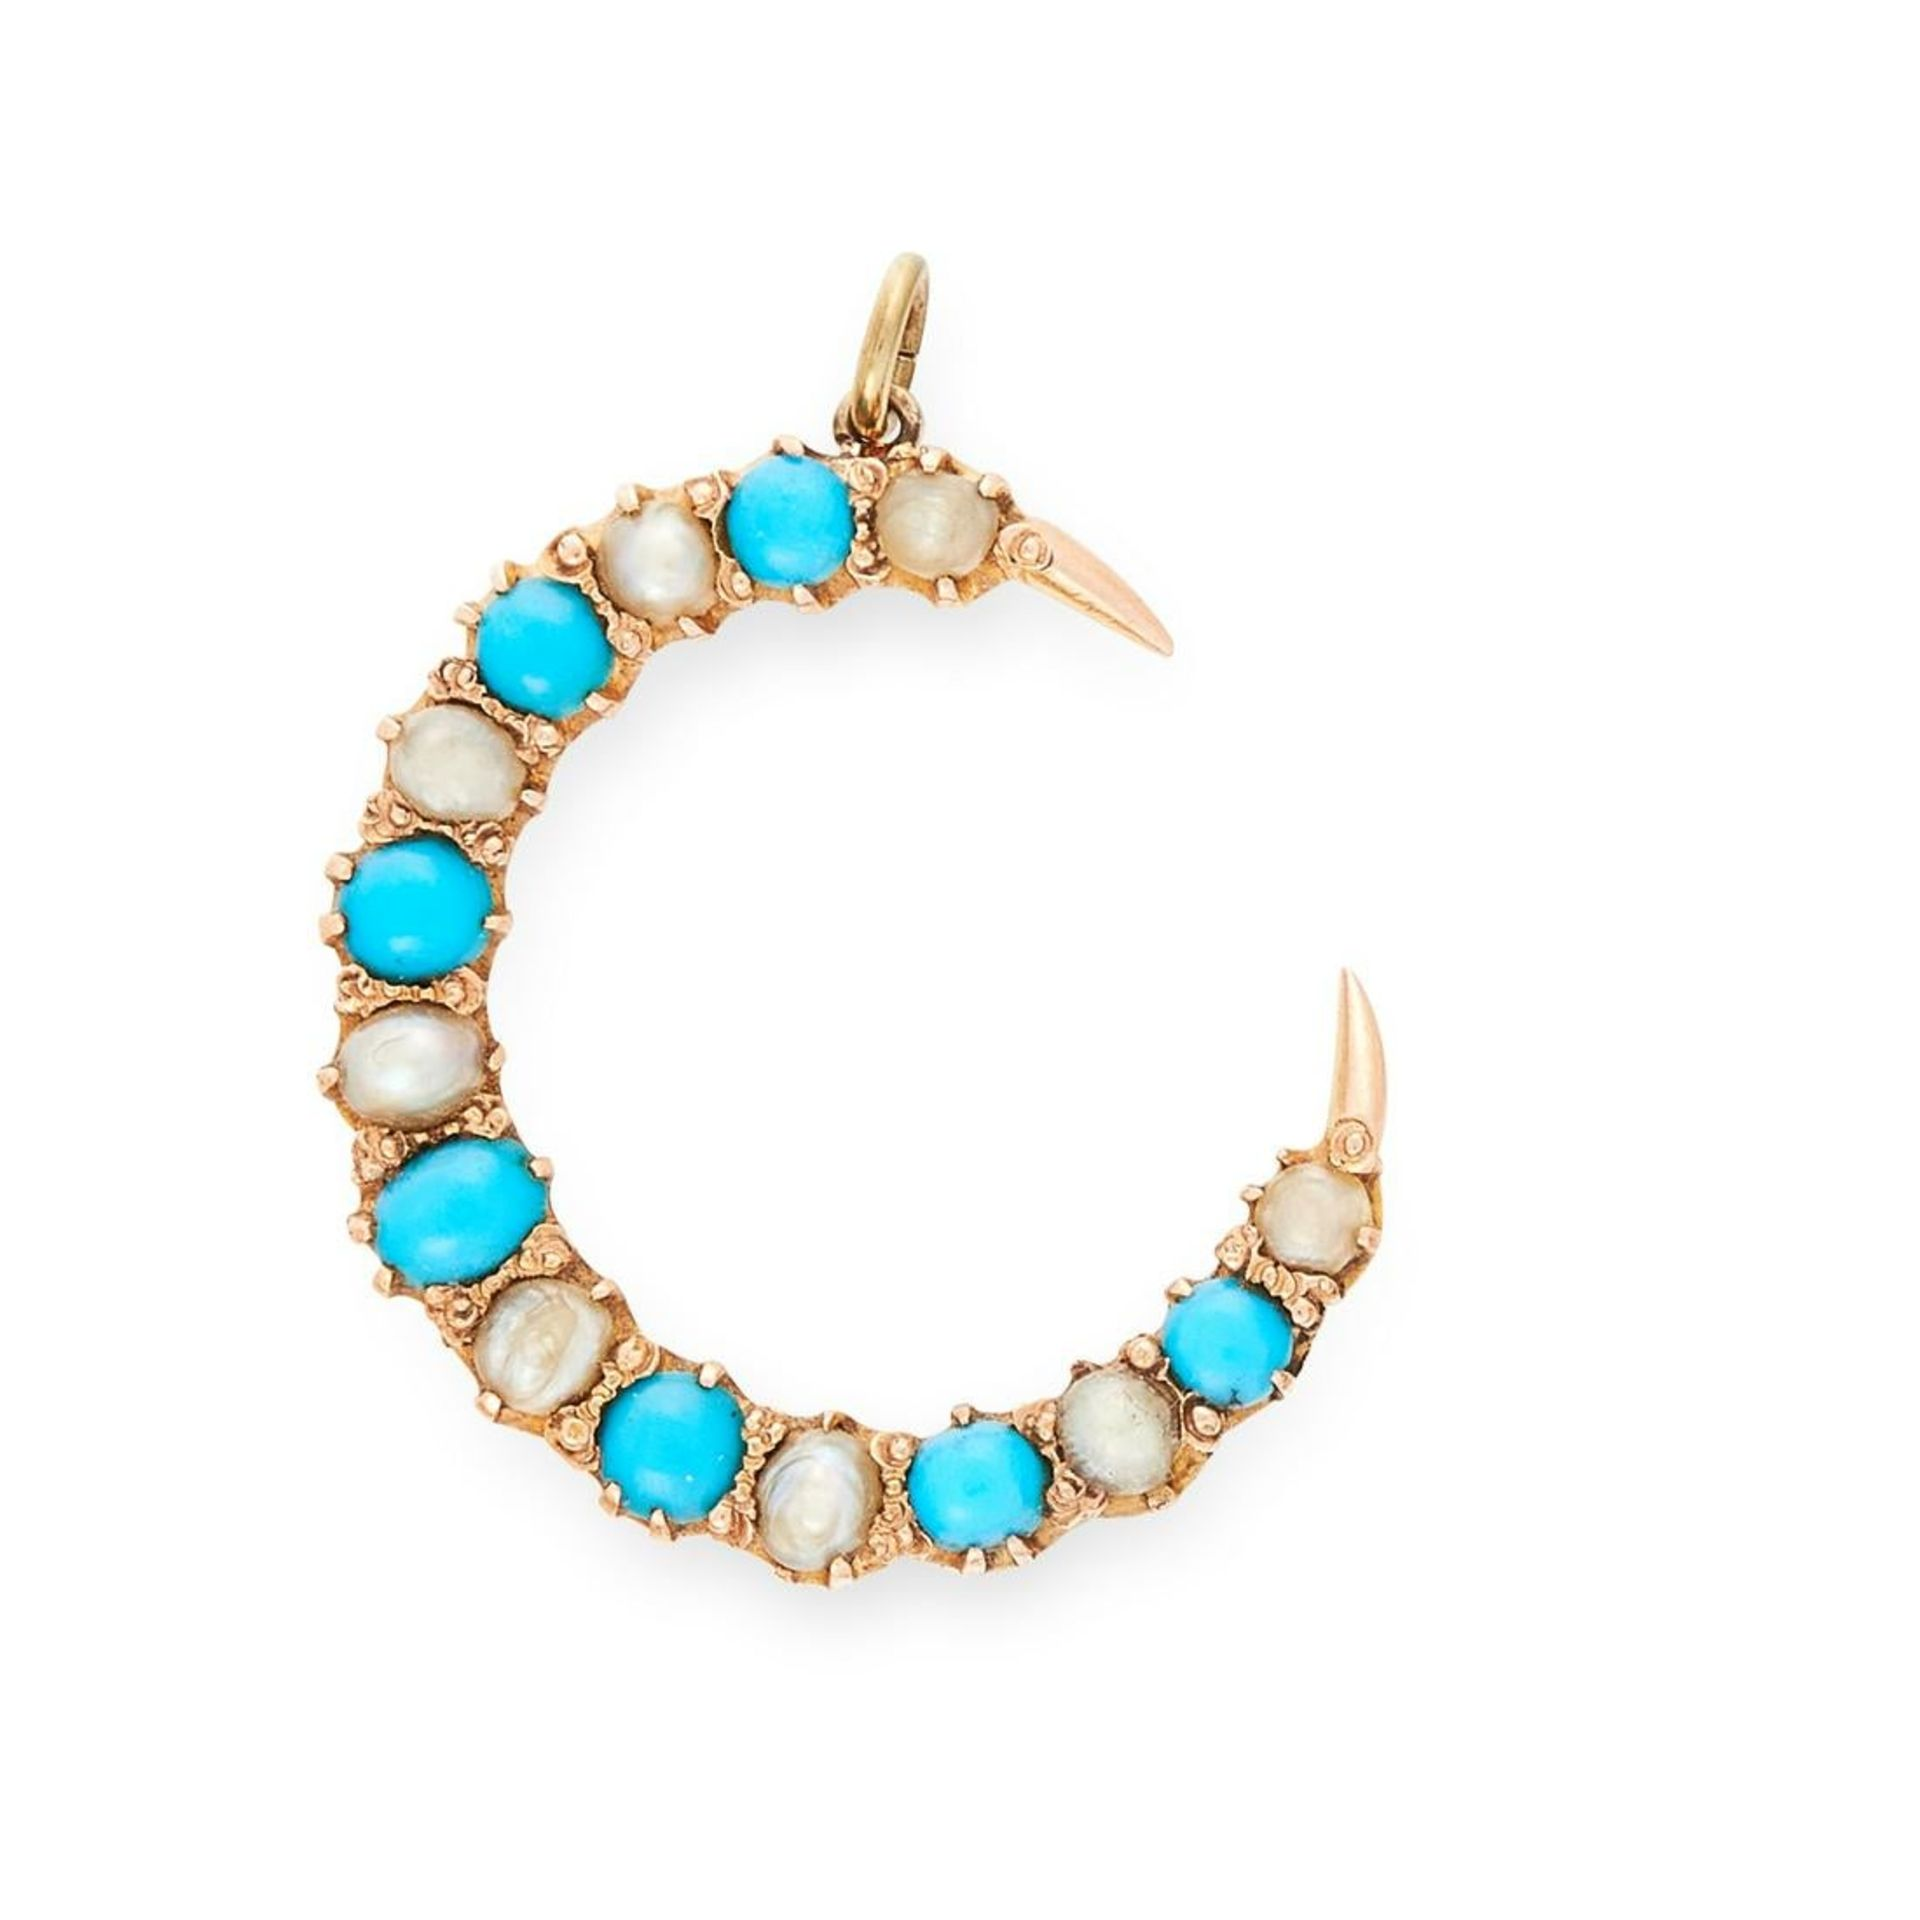 AN ANTIQUE TURQUOISE AND PEARL CRESCENT MOON PENDANT, 19TH CENTURY in yellow gold, set with